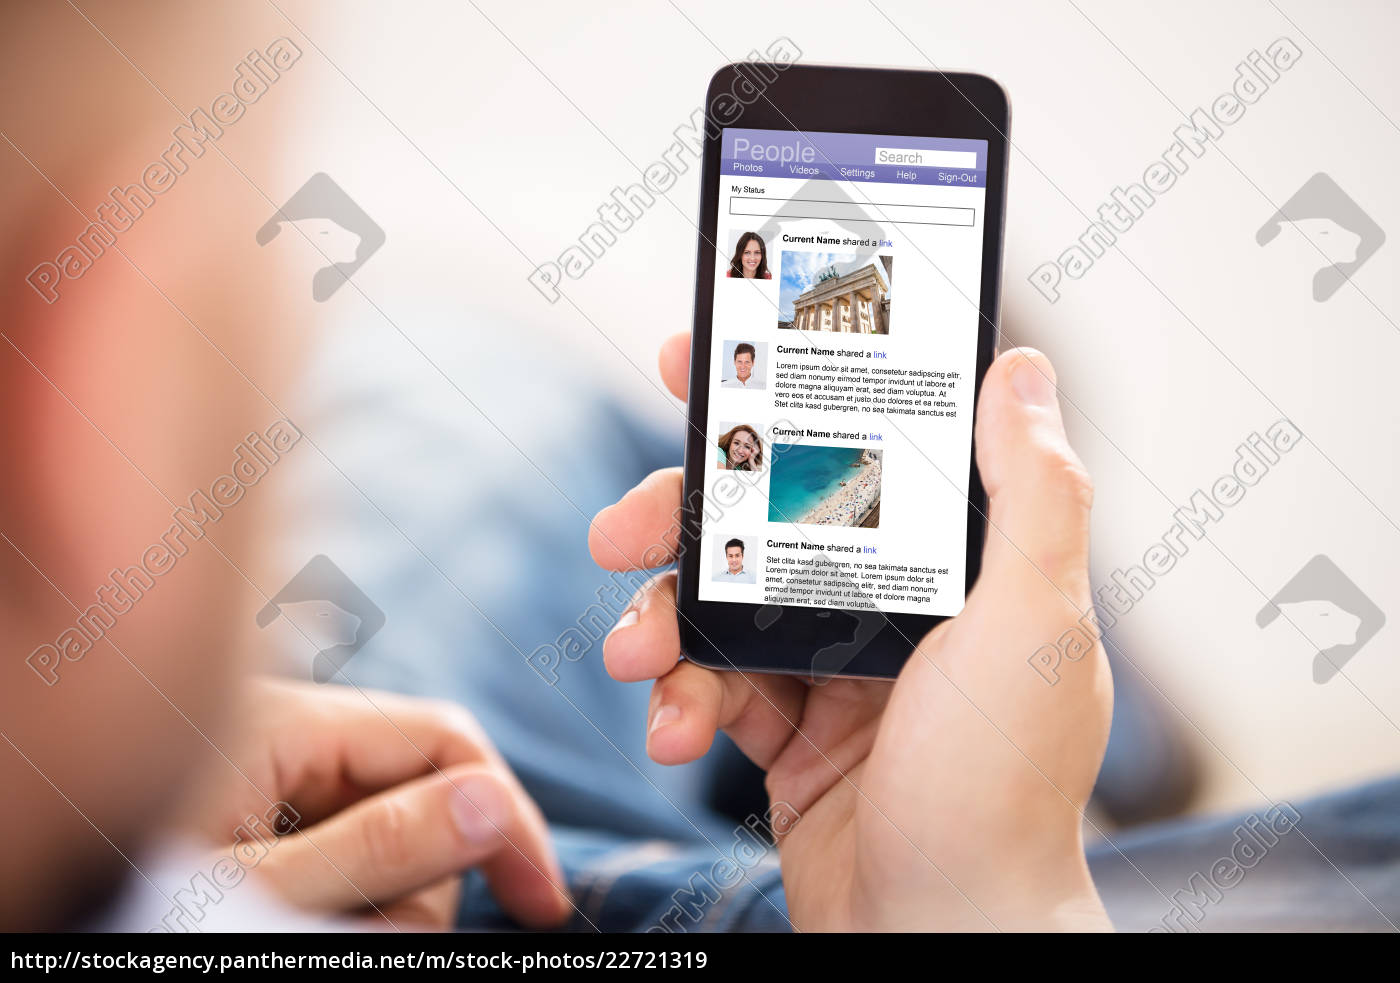 using, social, networking, site - 22721319